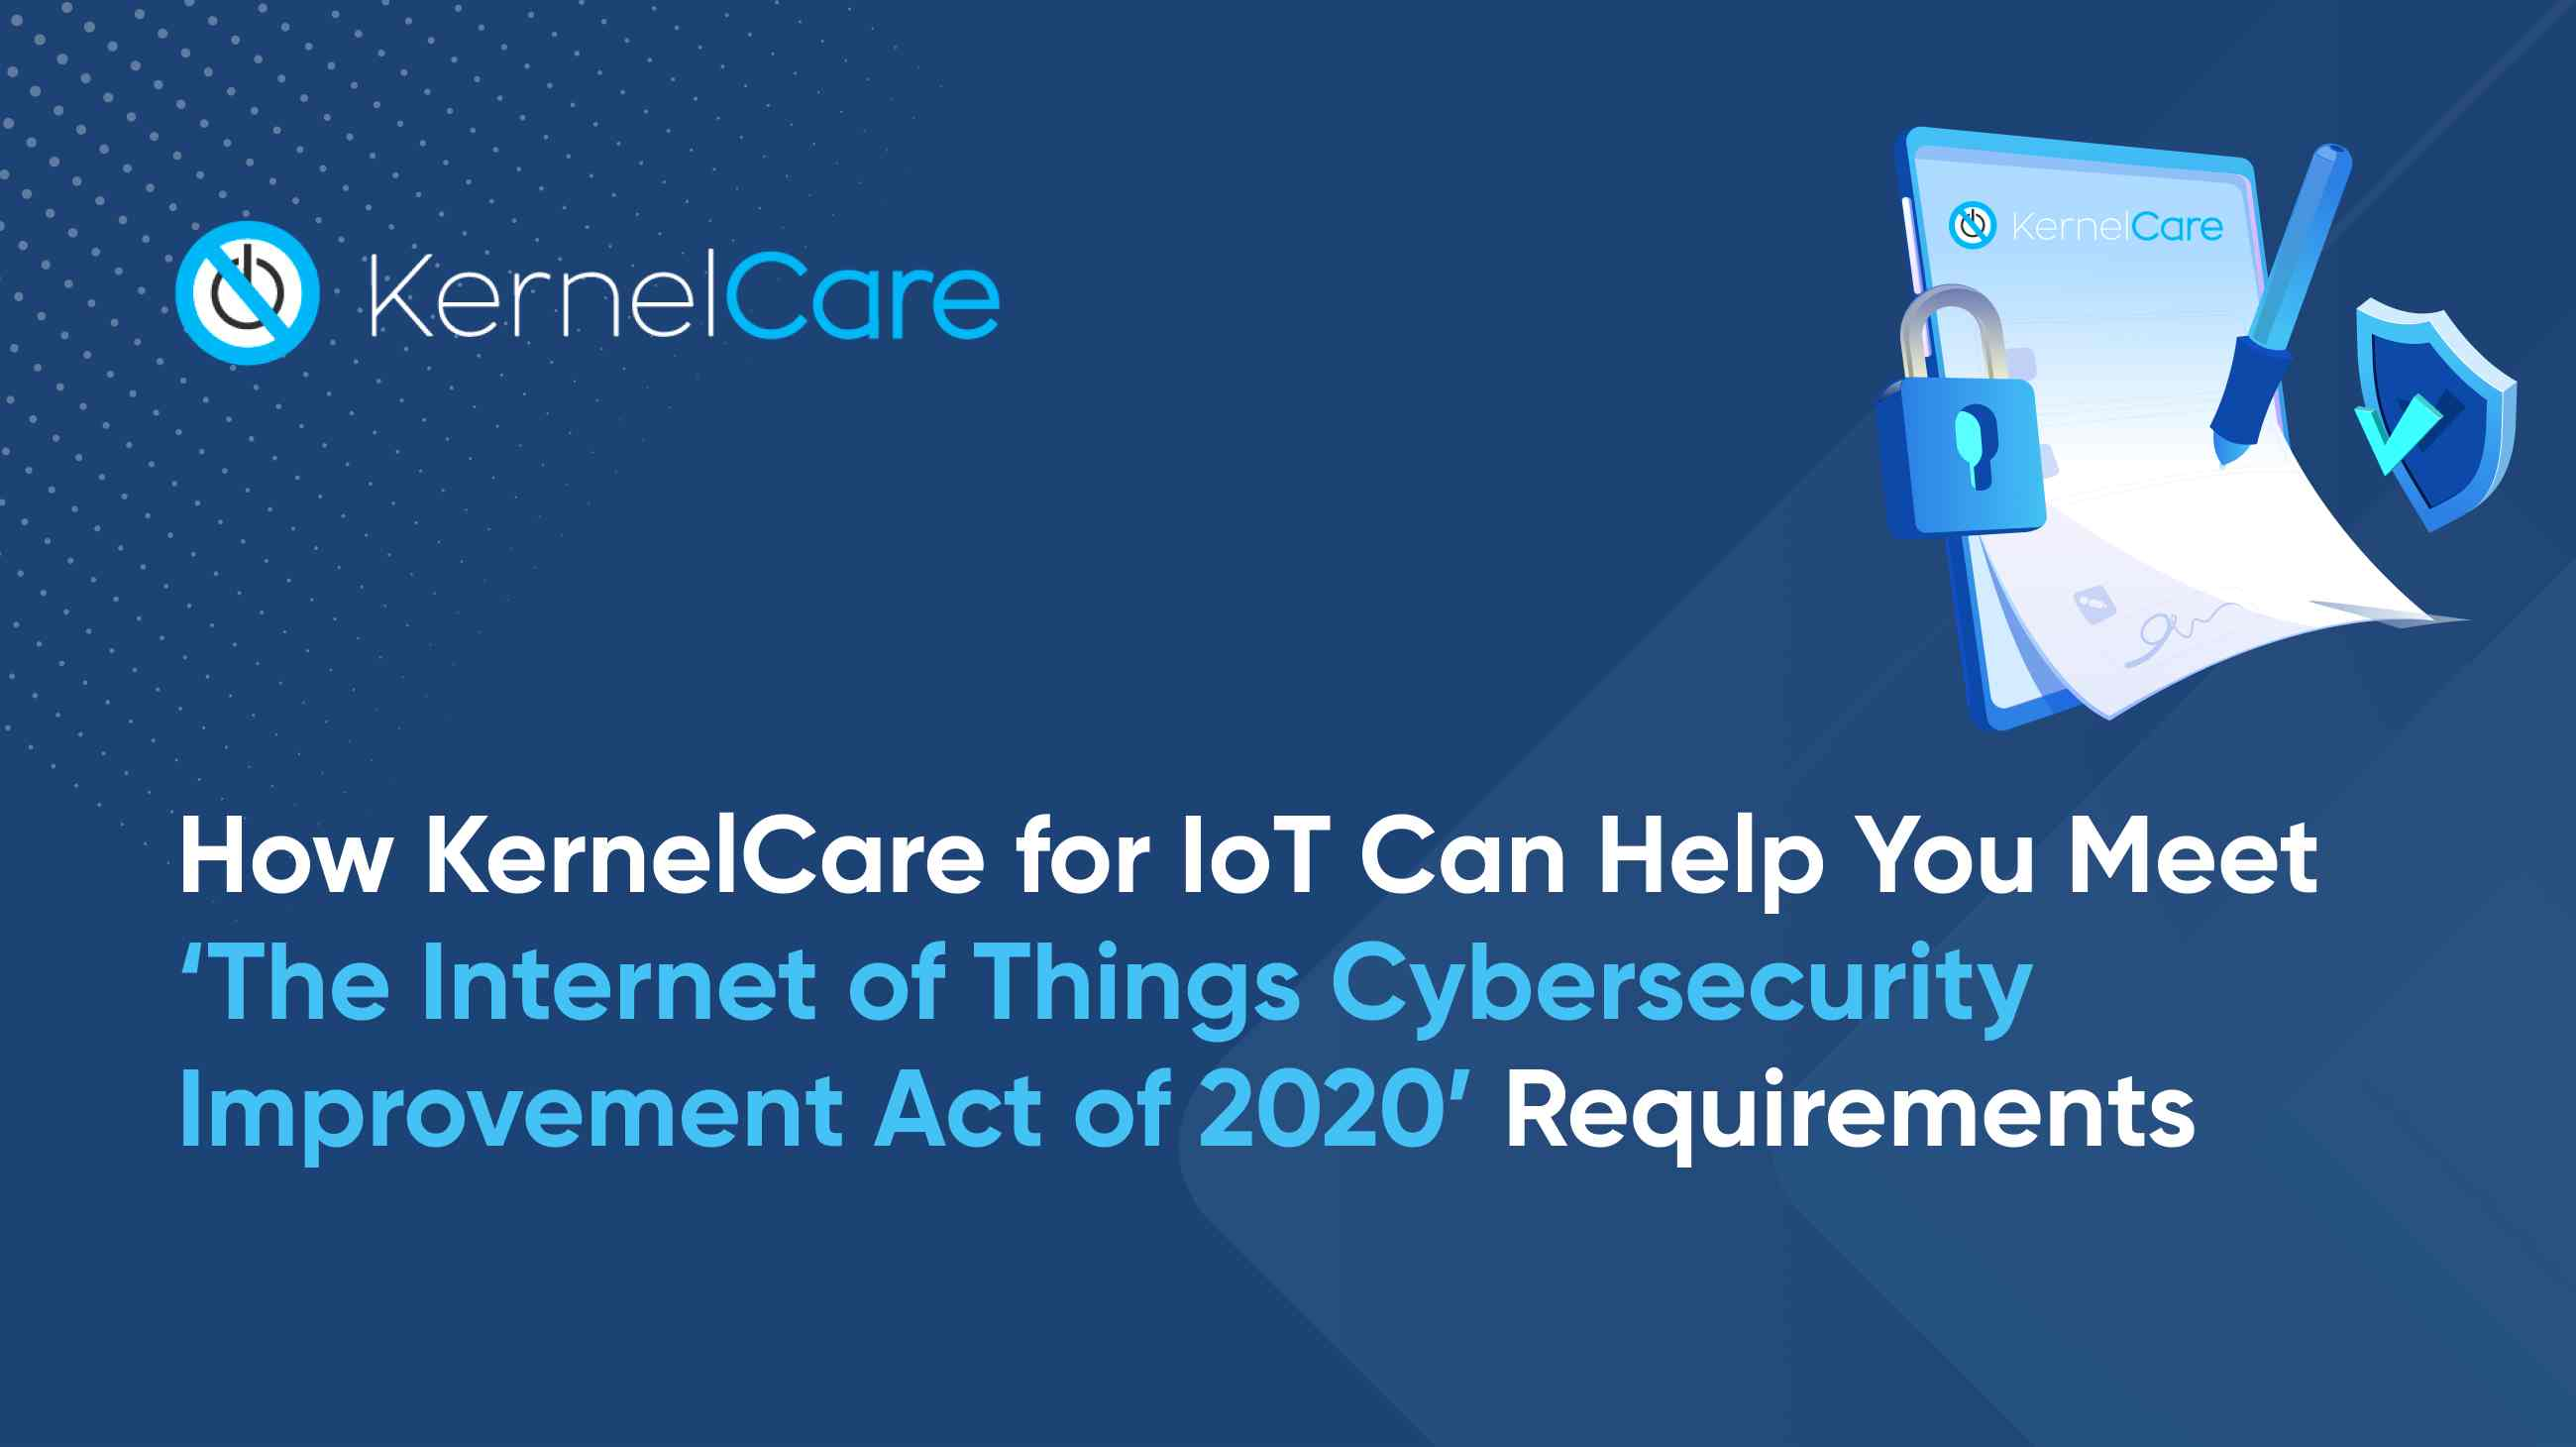 Meet The IoT Cybersecurity Improvement Act Requirements With KernelCare